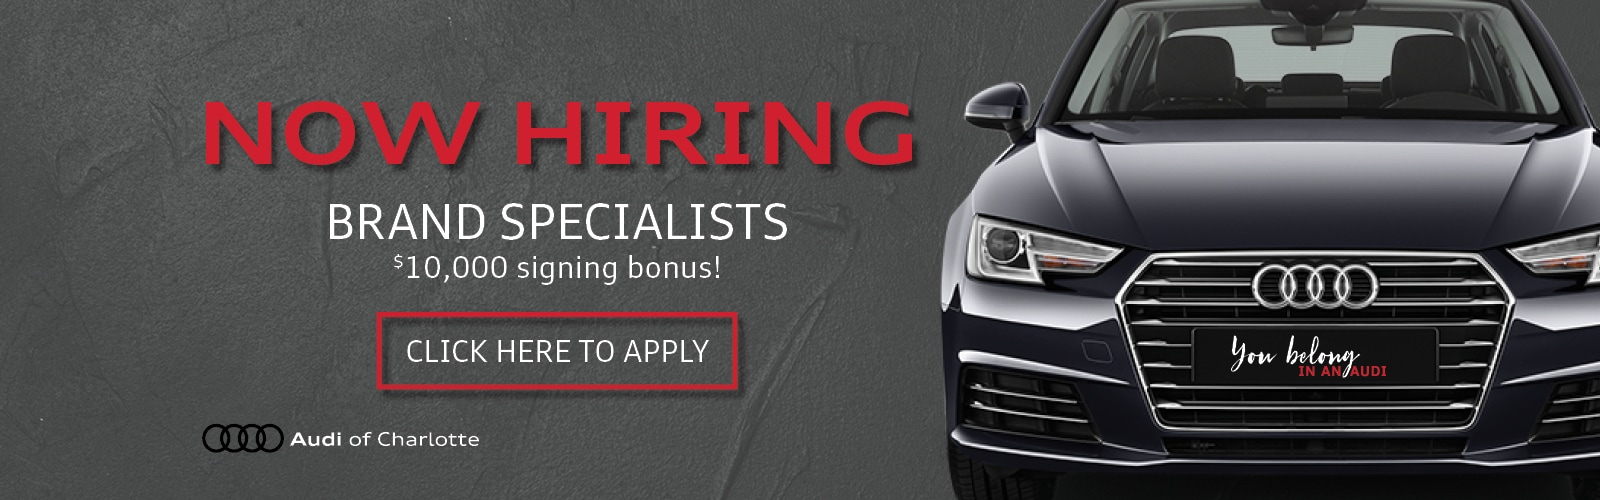 Dealer In Matthews By Gastonia And Concord NC Audi Of Charlotte - Audi repair charlotte nc